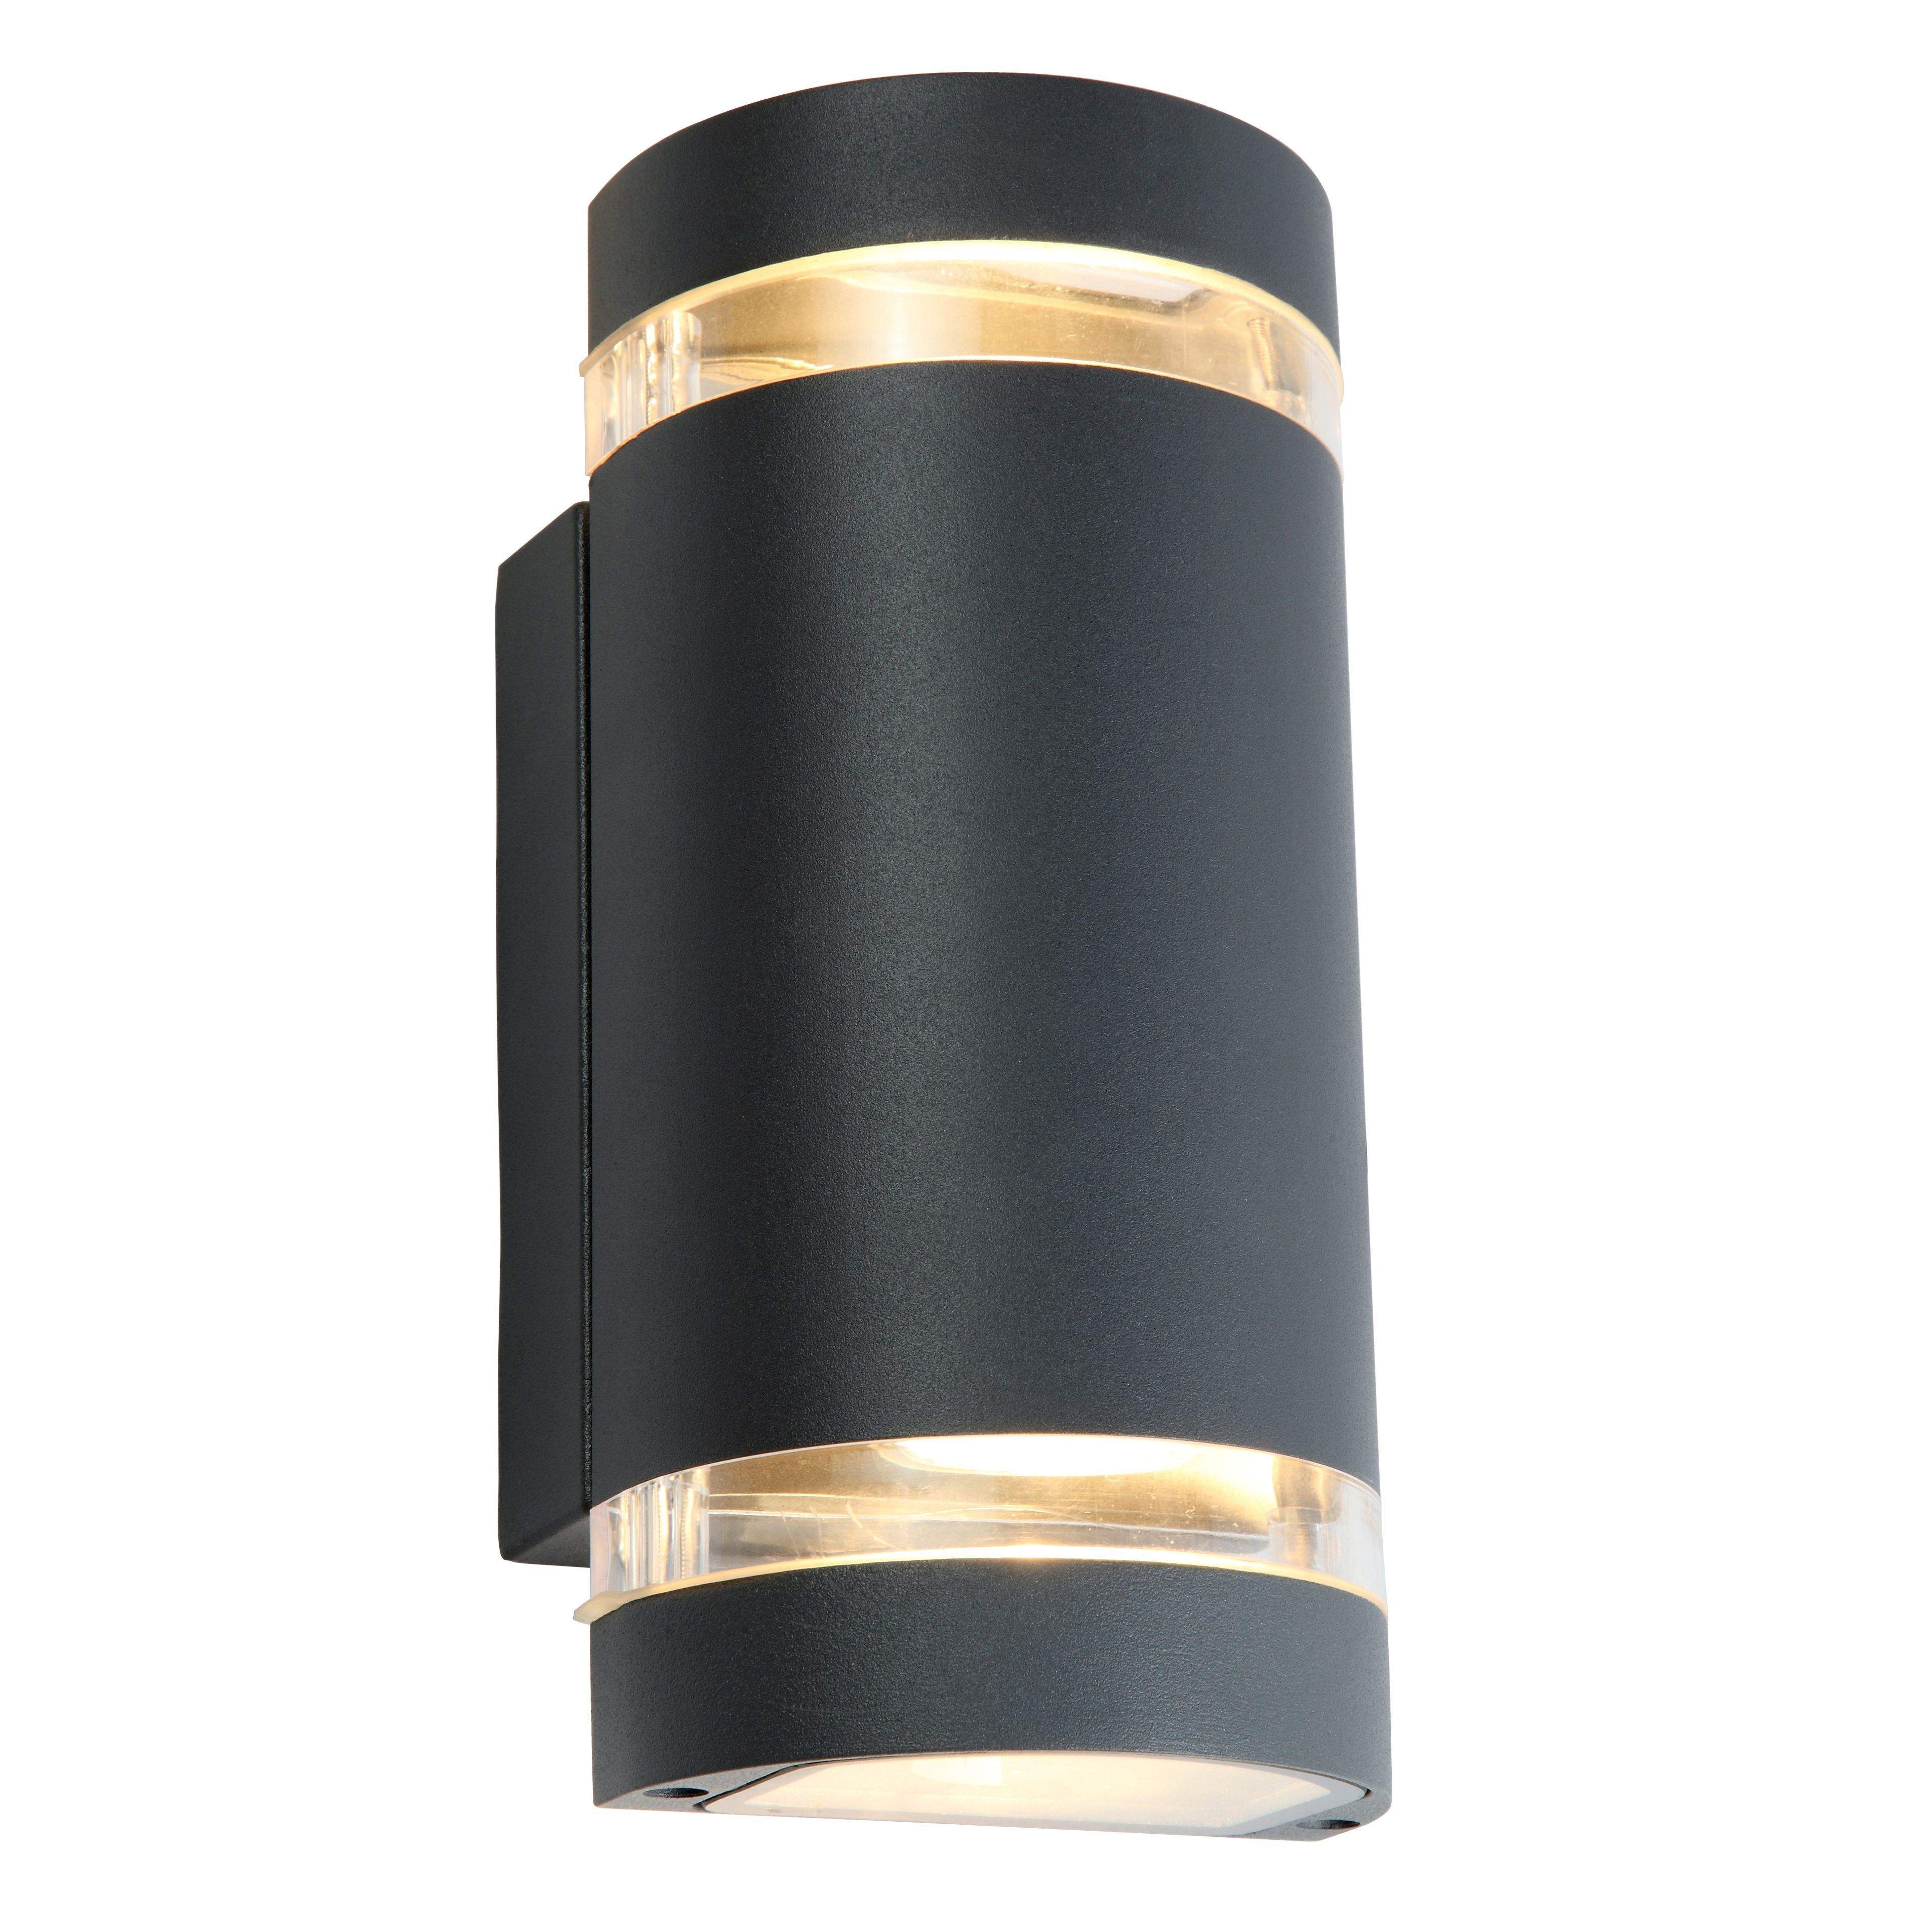 Blooma lua charcoal grey mains powered led wall light lights blooma lua charcoal grey mains powered led wall light lights walls and outdoor lighting workwithnaturefo